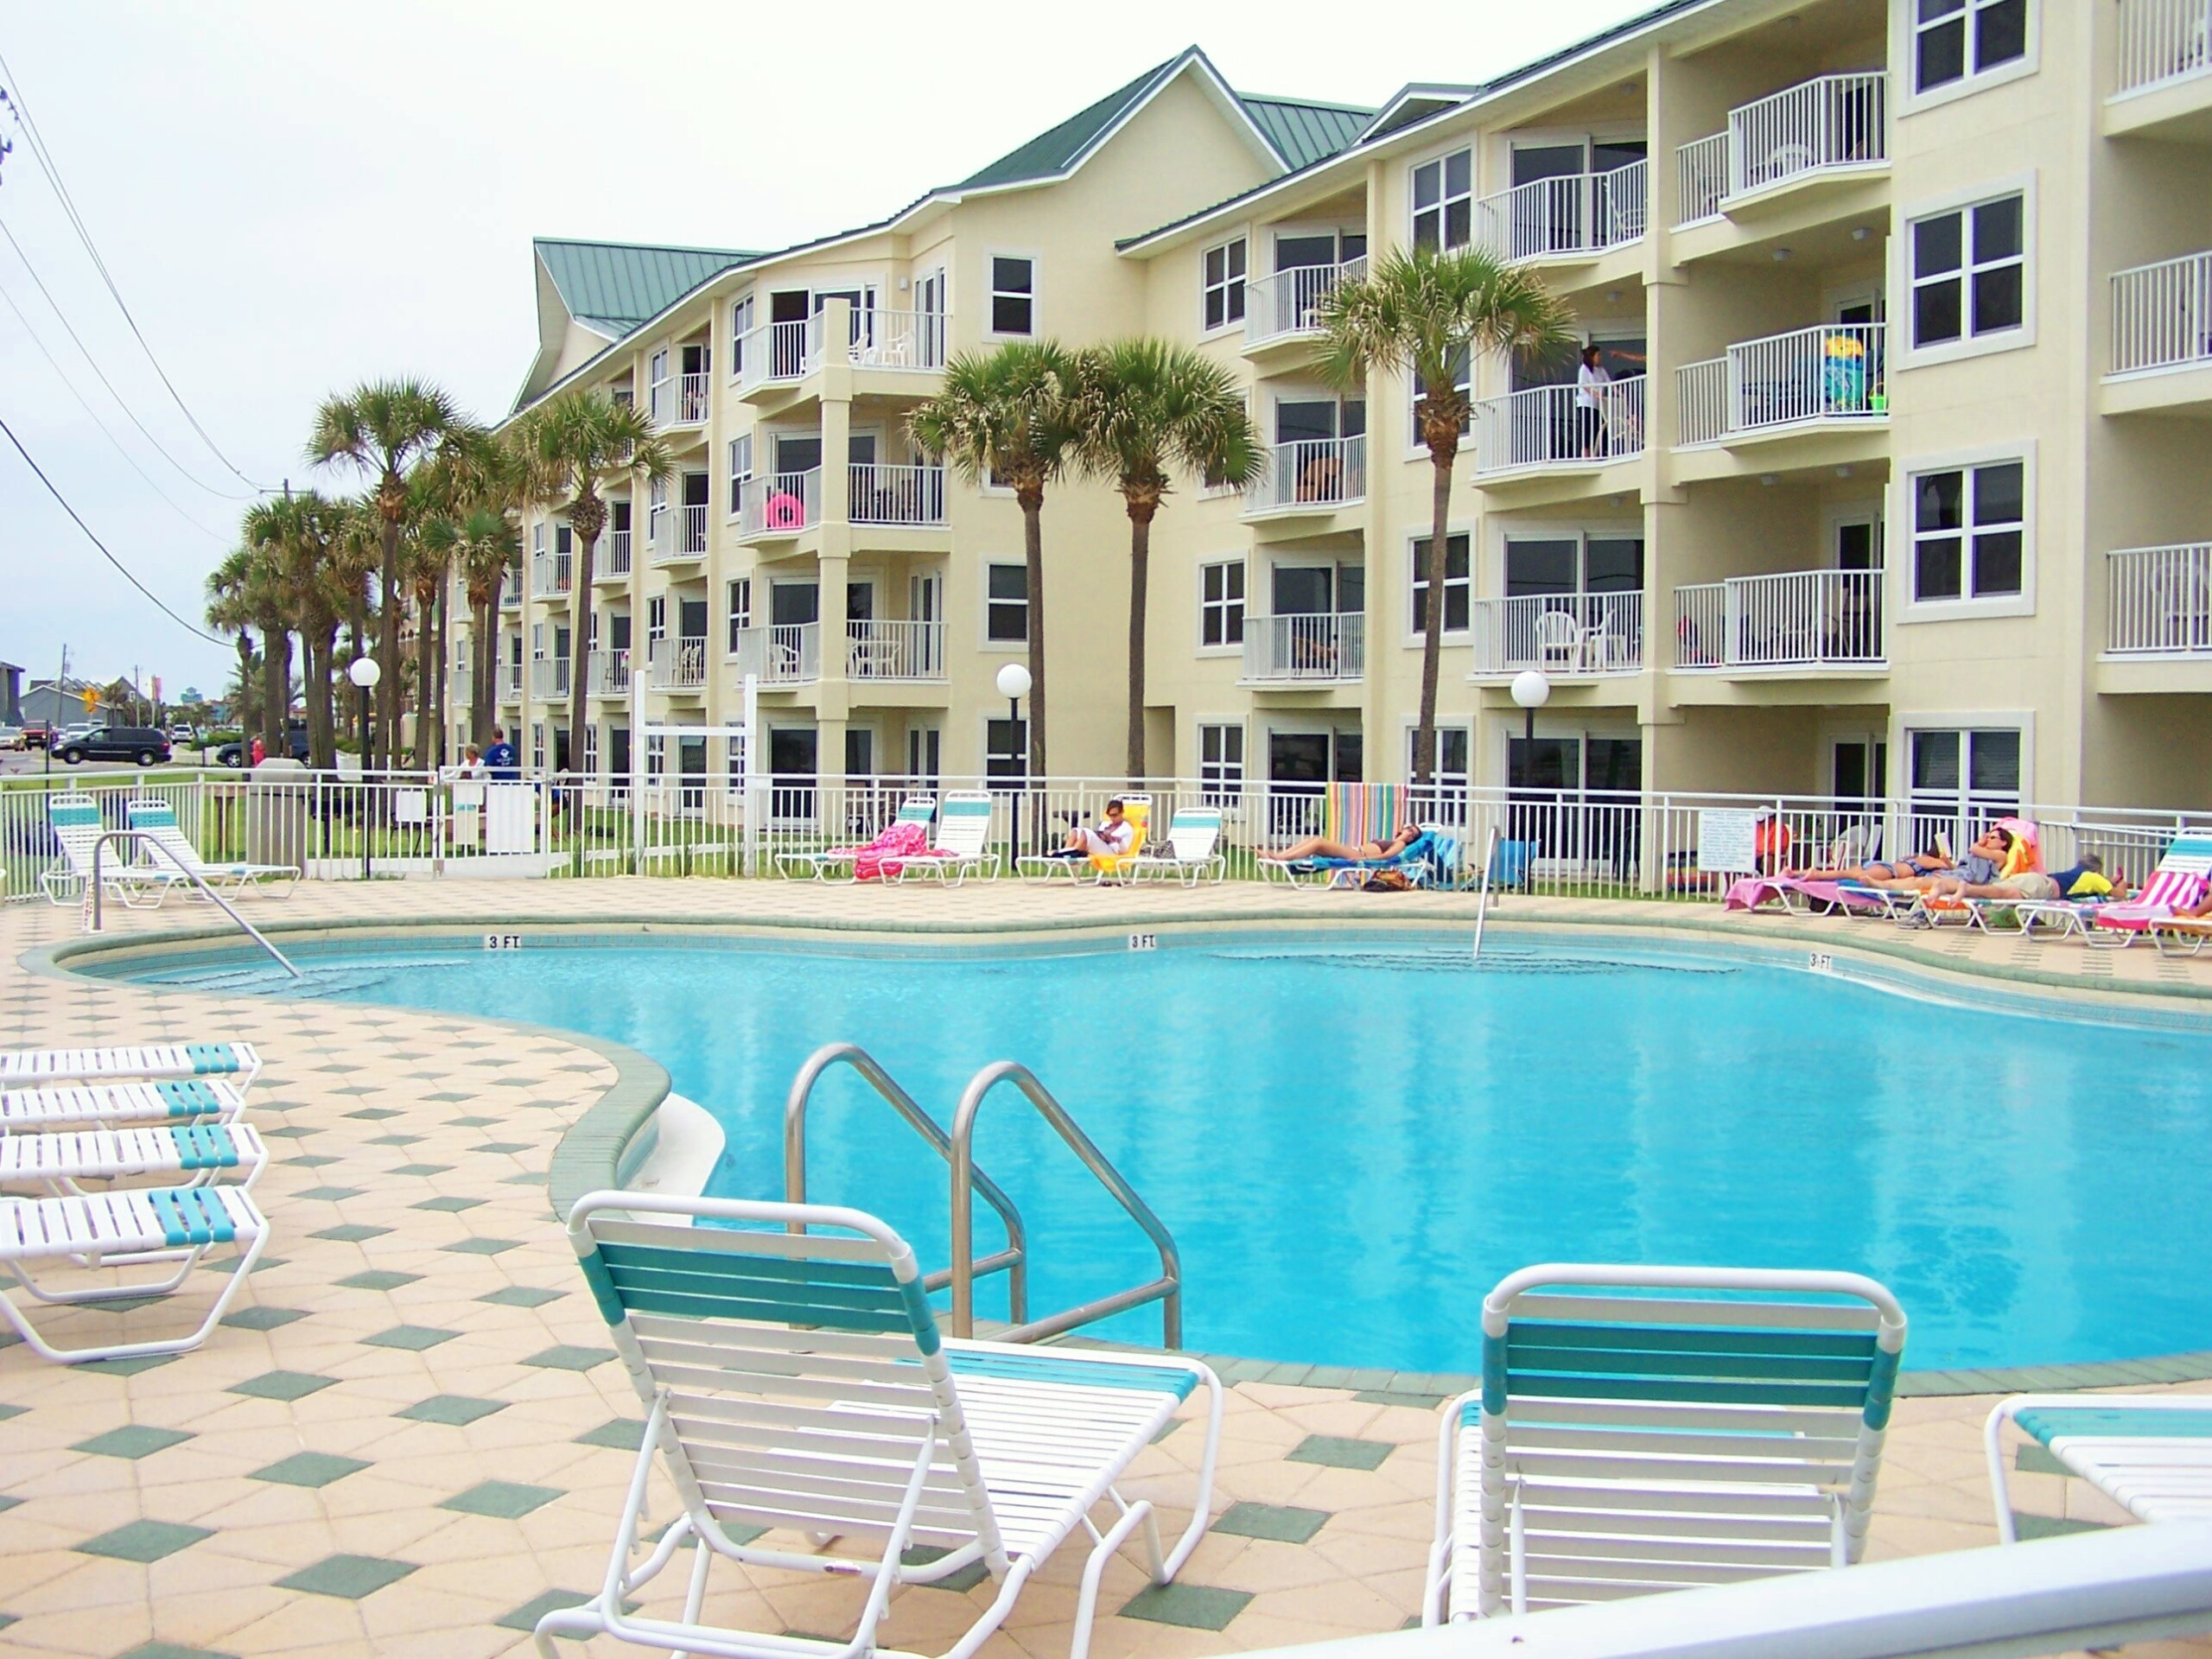 Maravilla 40 st thomas court maravilla resort beach - 1 bedroom condos in destin fl on the beach ...